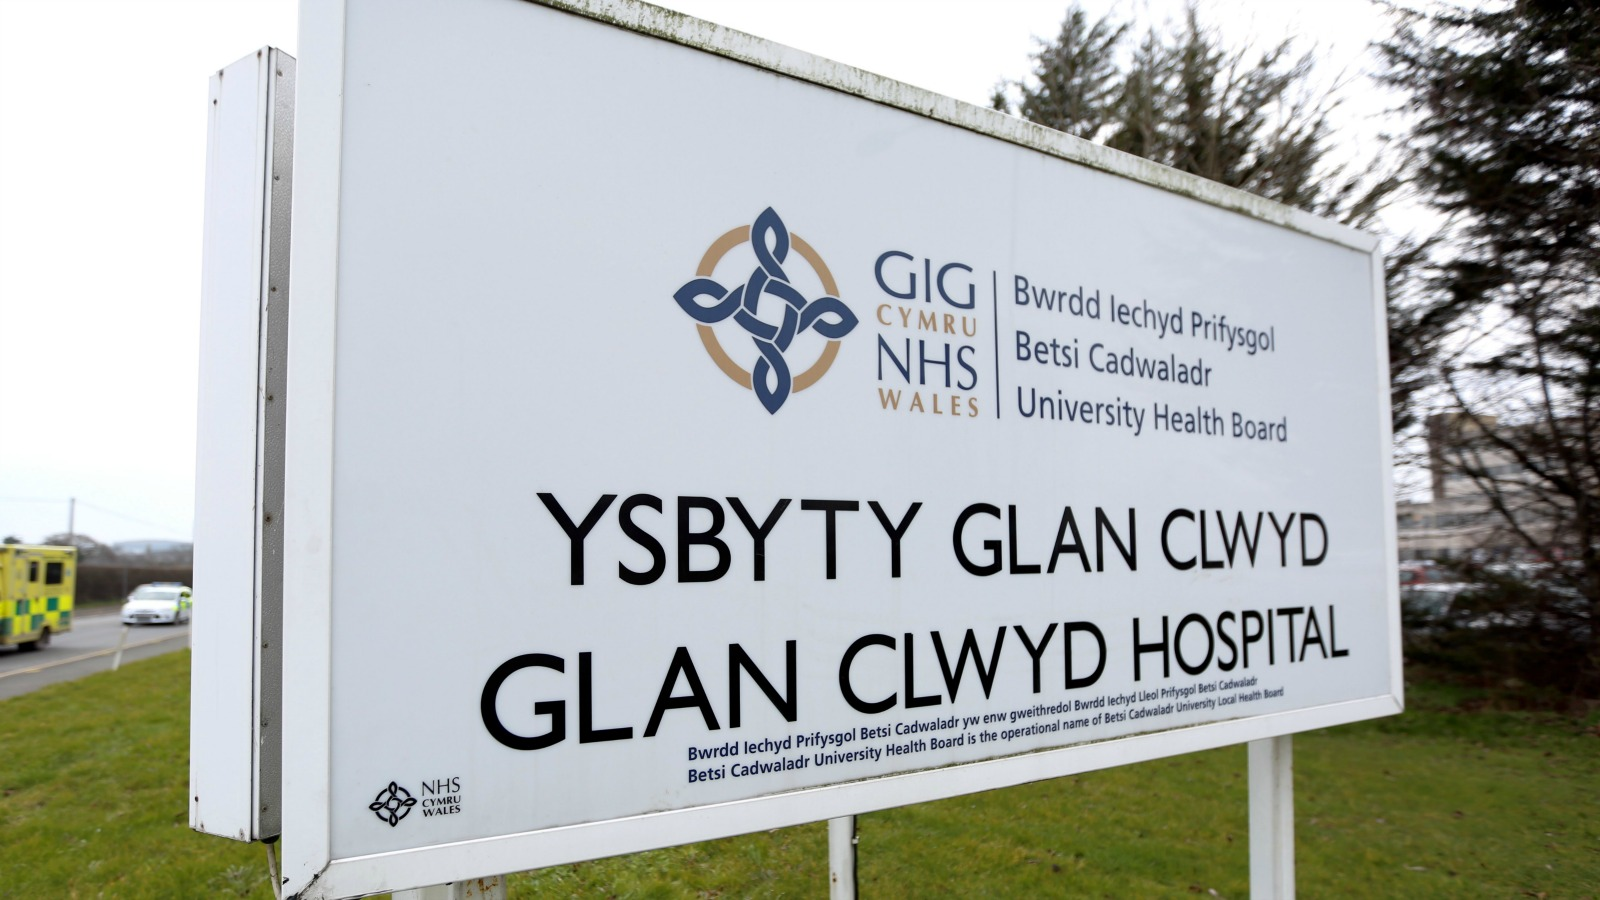 'No institutional abuse' at Glan Clwyd Hospital's Tawel Fan mental health ward, inquiry finds